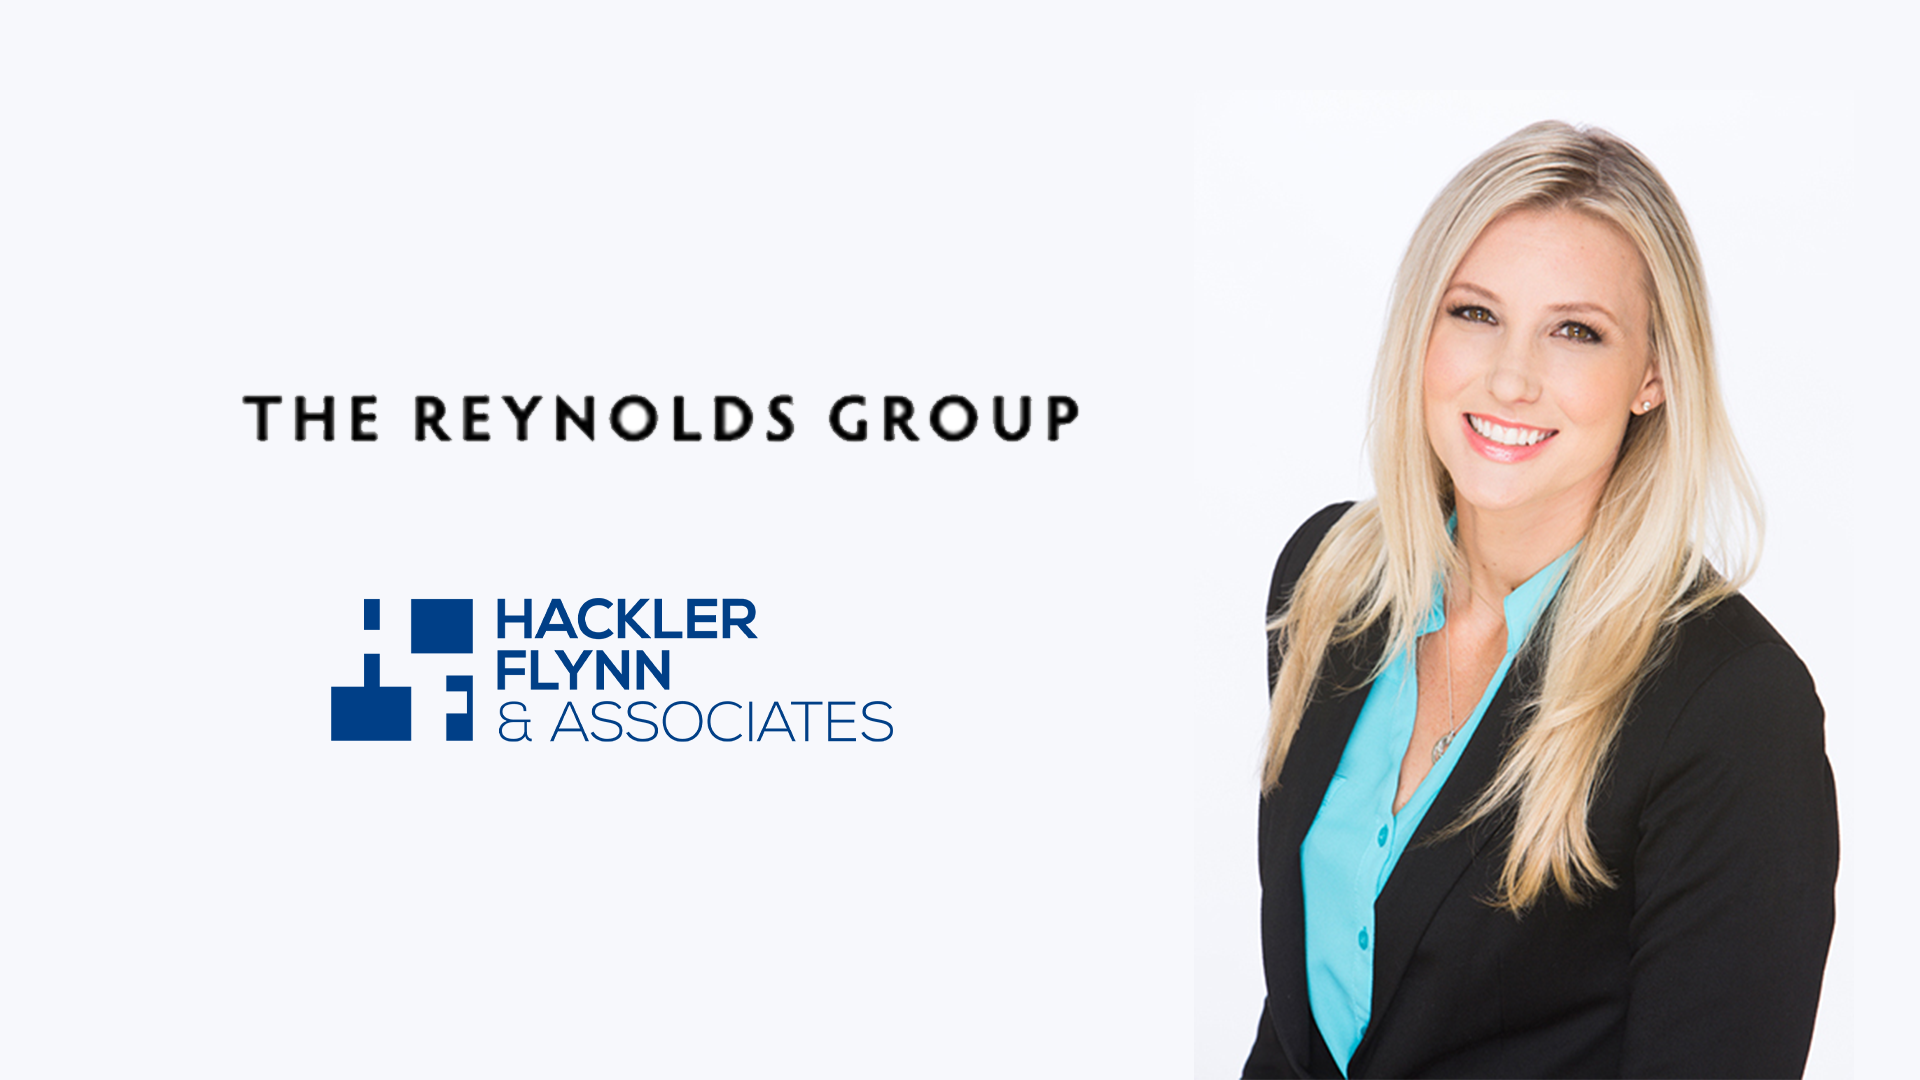 Hackler Flynn & Associates The Reynolds Group